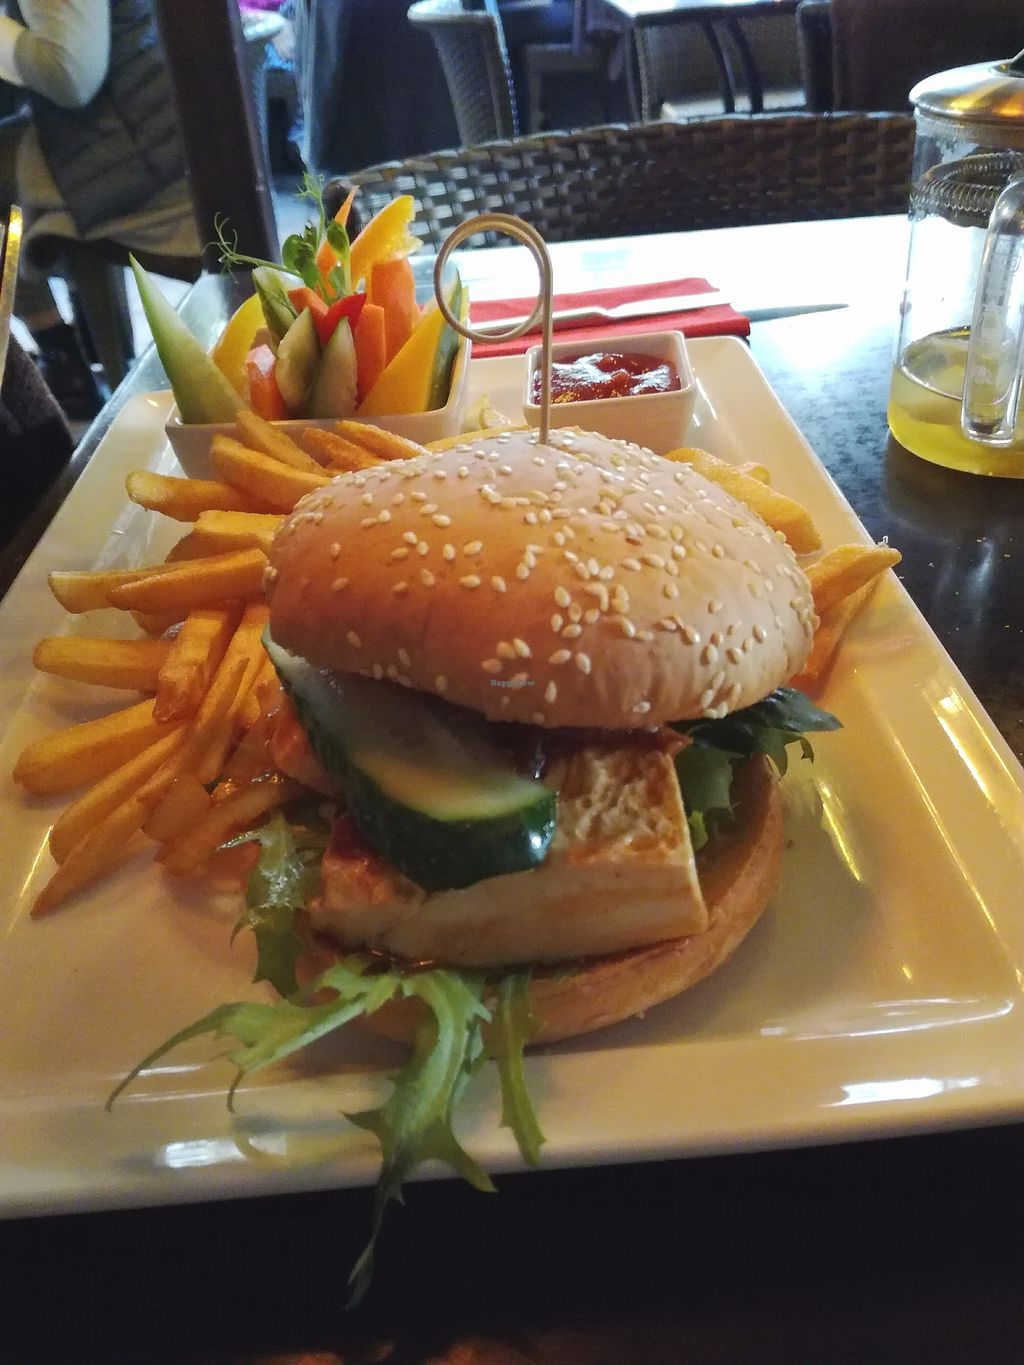 "Photo of Lidojosa Varde  by <a href=""/members/profile/ViktorijaGor"">ViktorijaGor</a> <br/>Vegan burger with SILKEN tofu. It's ok if you happen to drop by for beer with friends, but far from tasty... Unfortunately.  <br/> September 25, 2017  - <a href='/contact/abuse/image/36123/308161'>Report</a>"